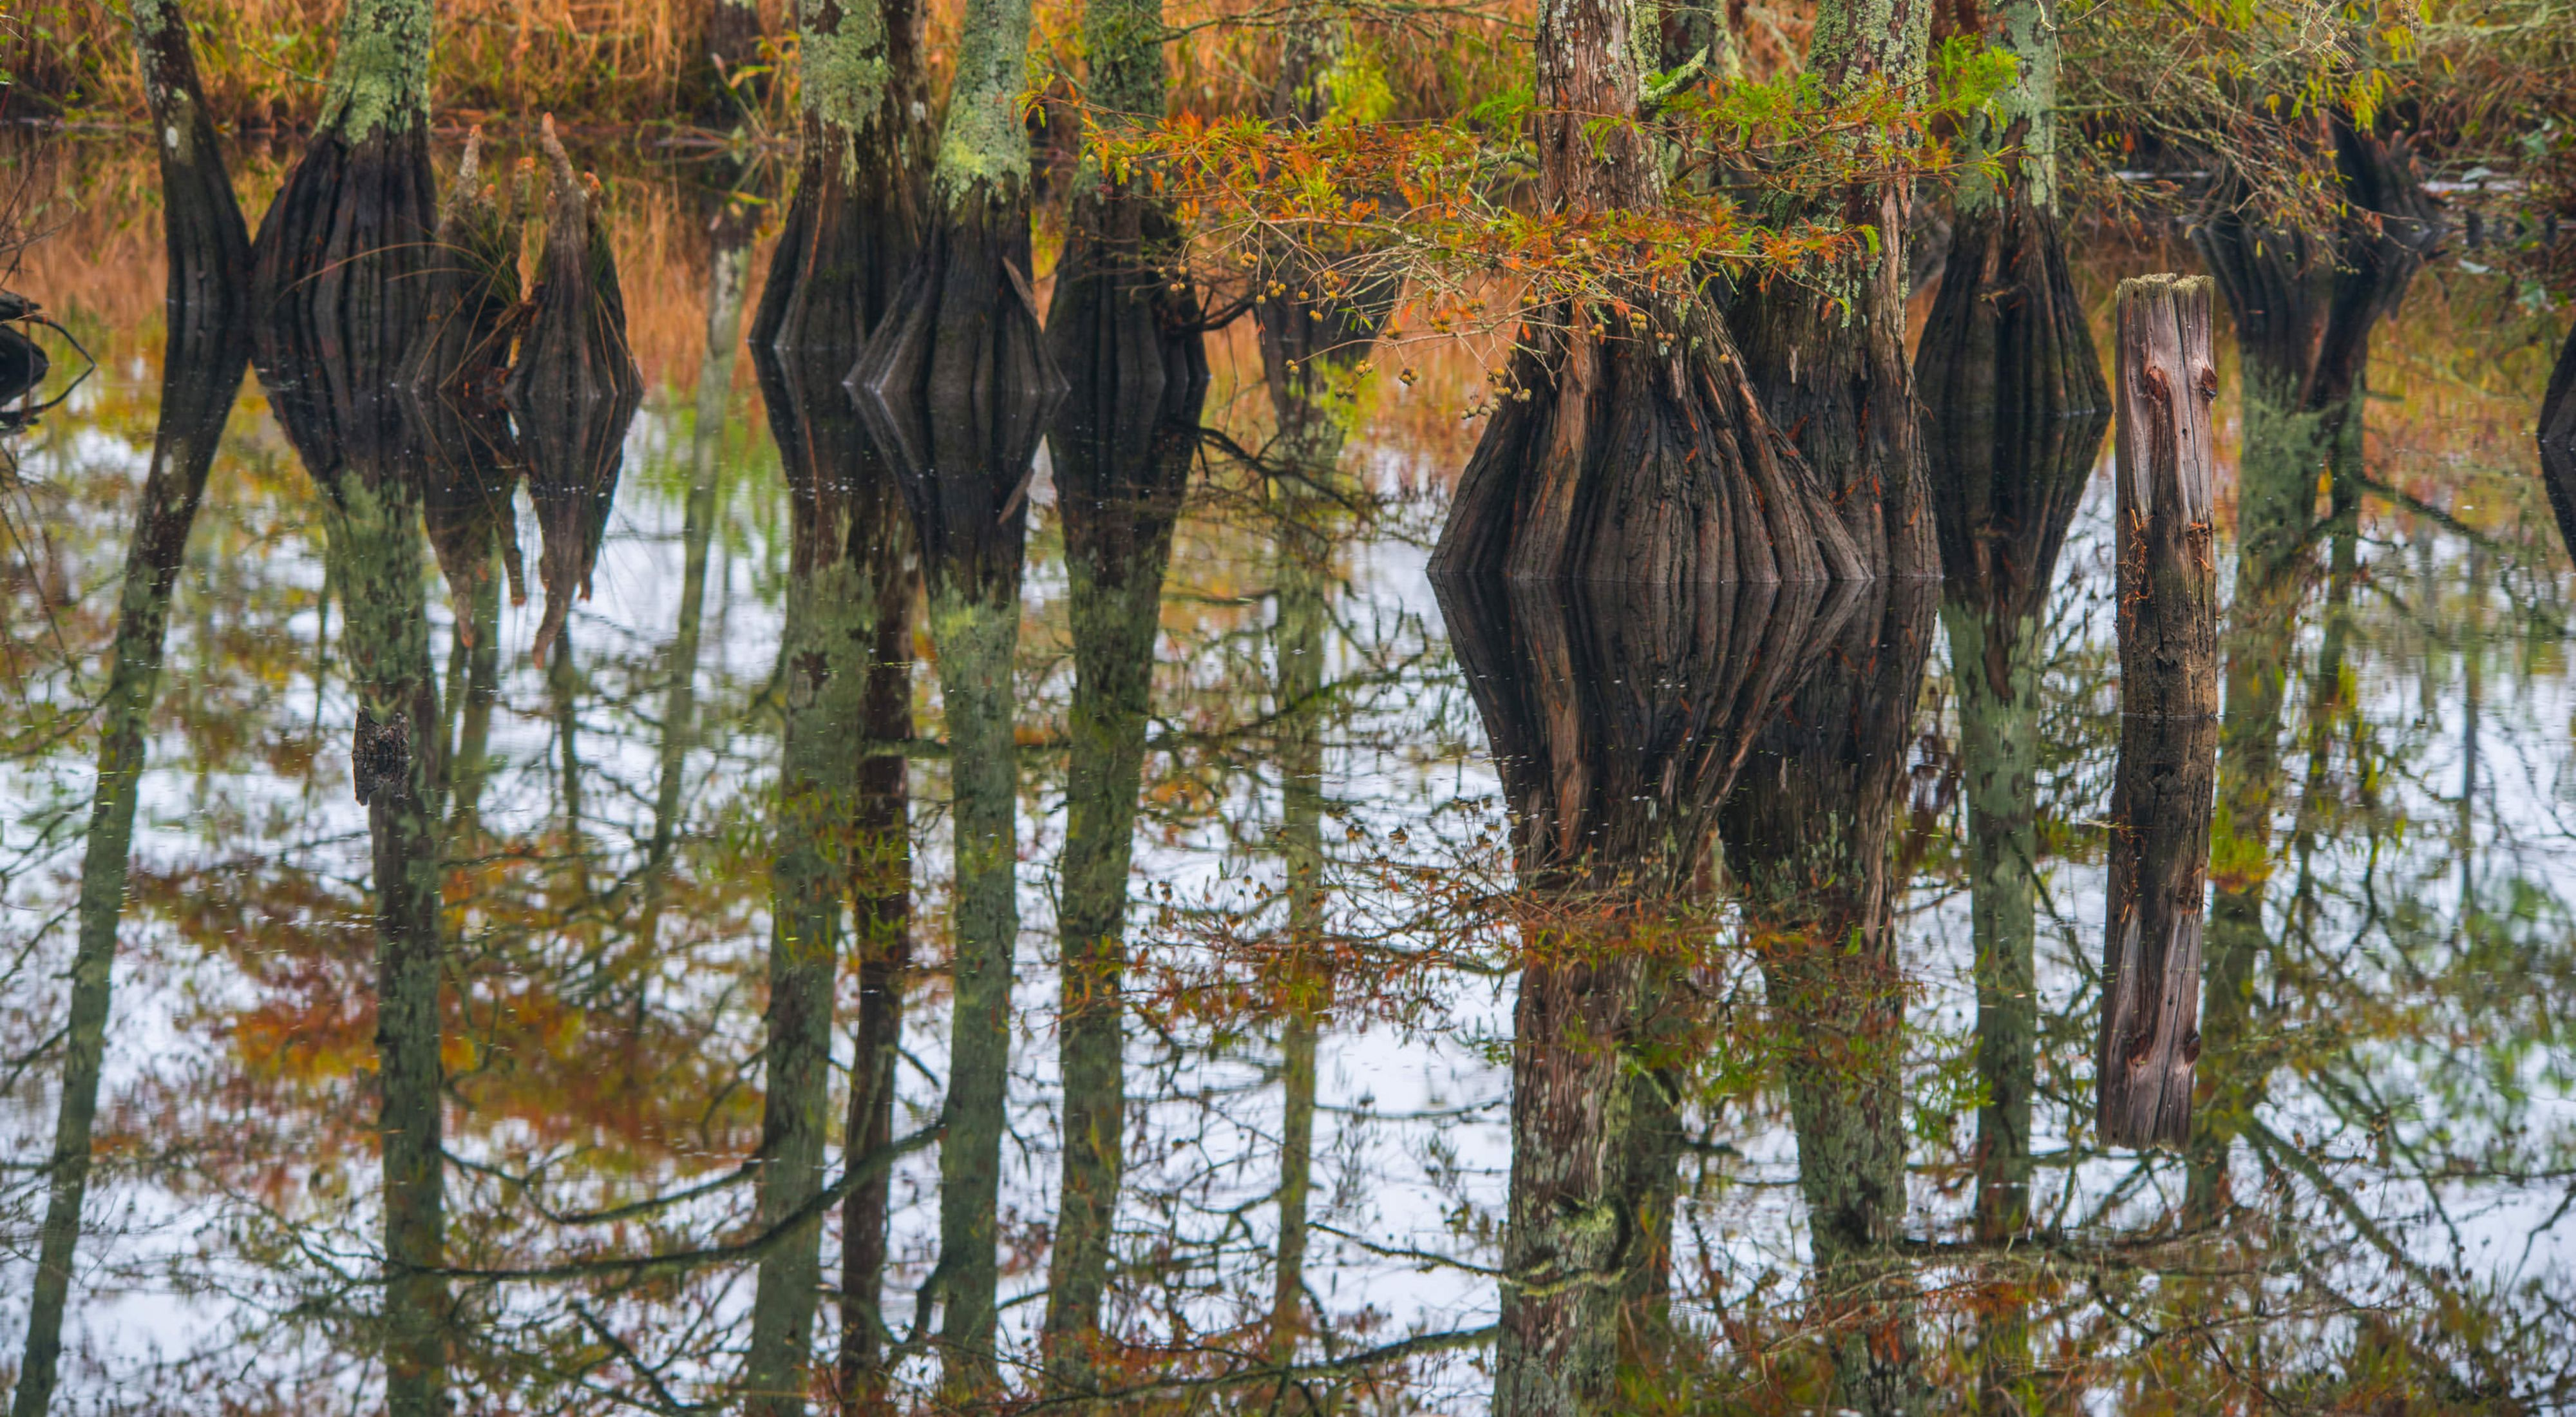 Cypress knees are reflected in the waters of North Landing River Preserve.